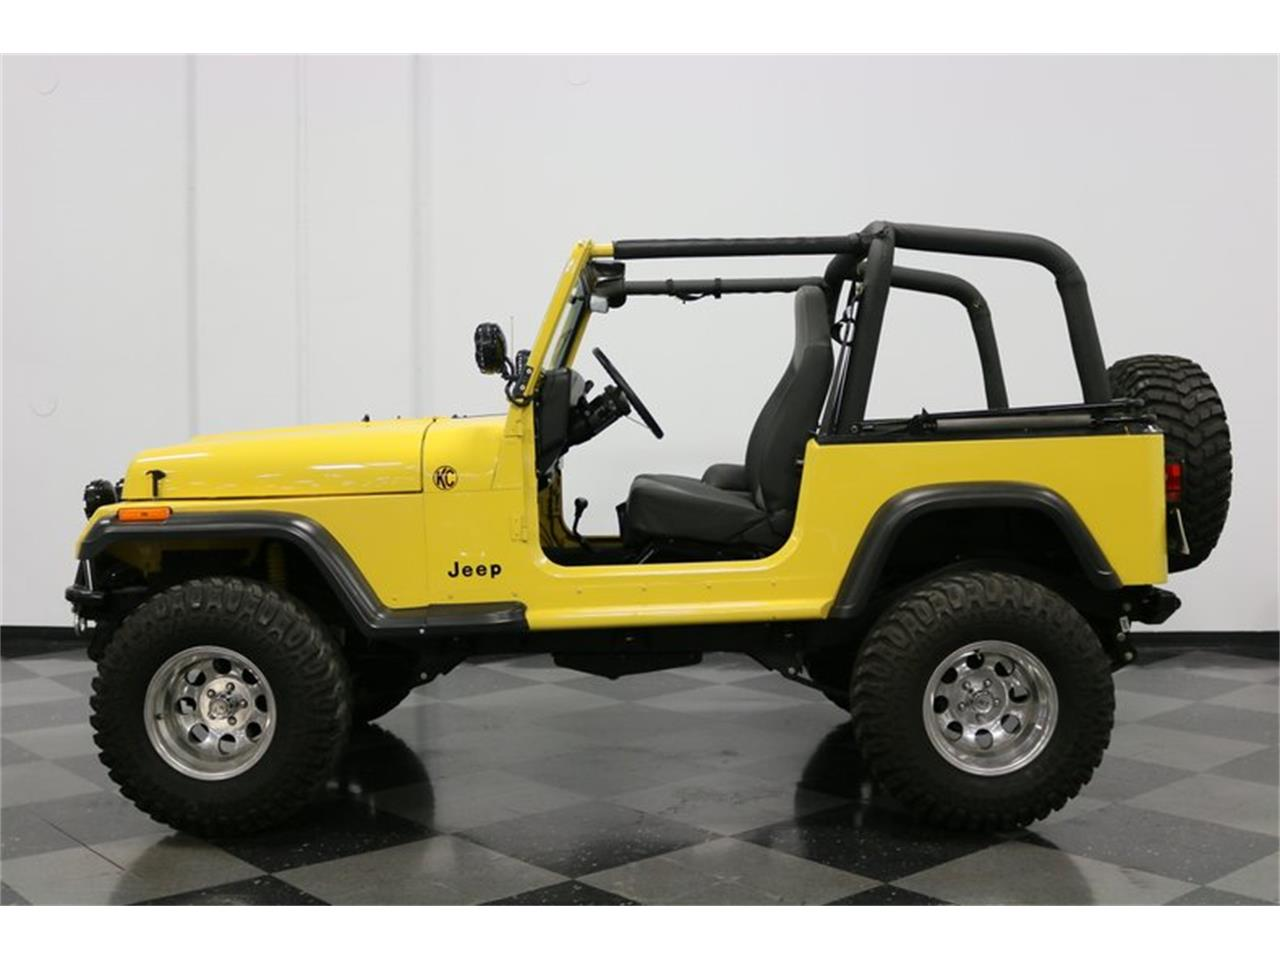 Large Picture of 1993 Jeep Wrangler located in Texas - $21,995.00 Offered by Streetside Classics - Dallas / Fort Worth - P701